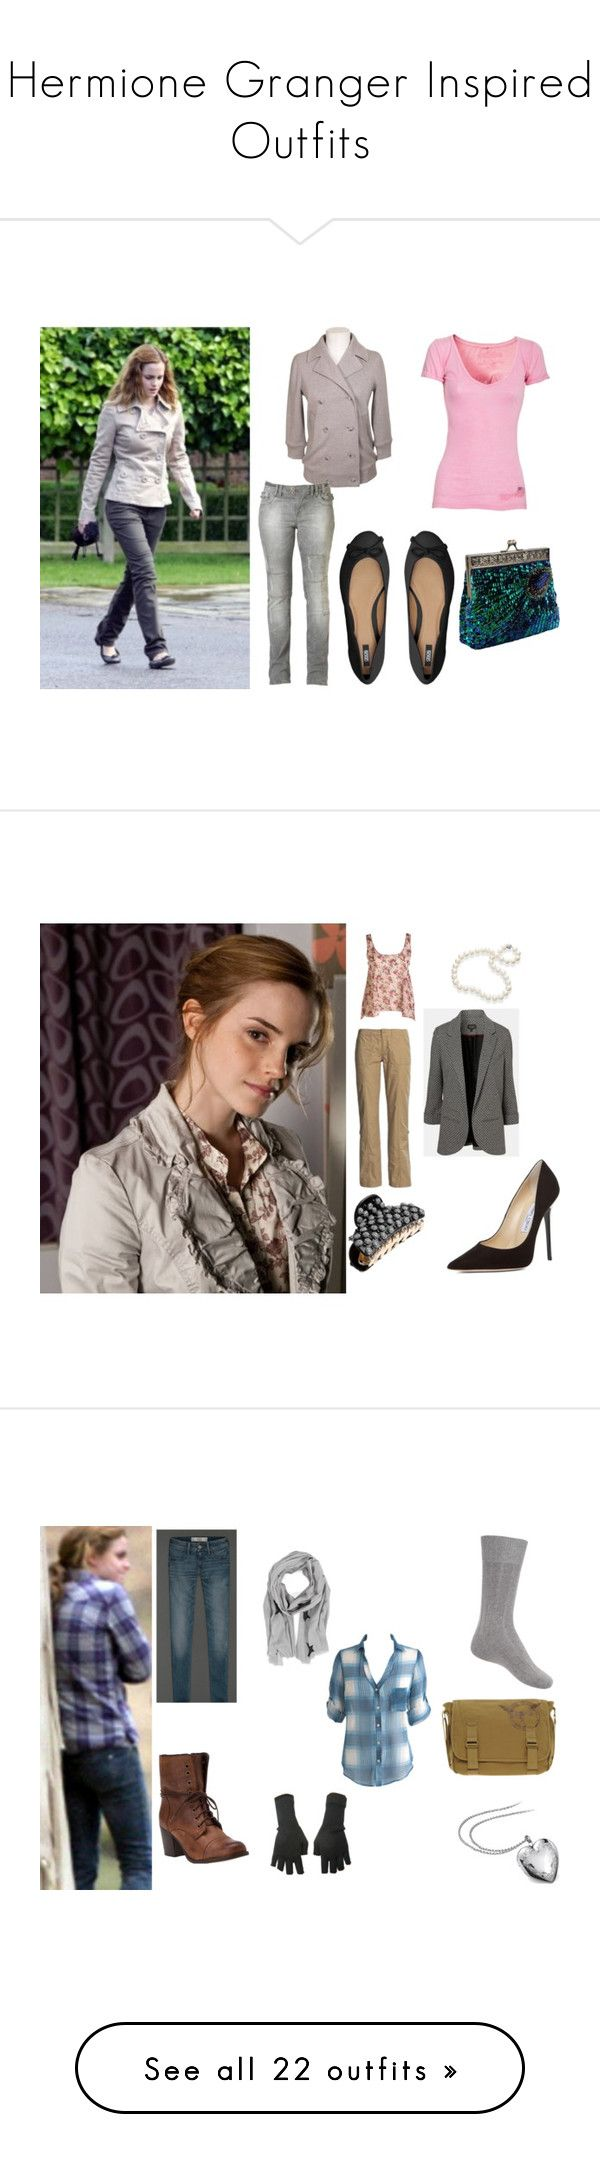 """""""Hermione Granger Inspired Outfits"""" by yellowheads ❤ liked on Polyvore featuring Marc by Marc Jacobs, True Religion, Joe Browns, ASOS, emma watson, deathly hallows, hermione granger, harry potter, Emma Watson and Topshop"""